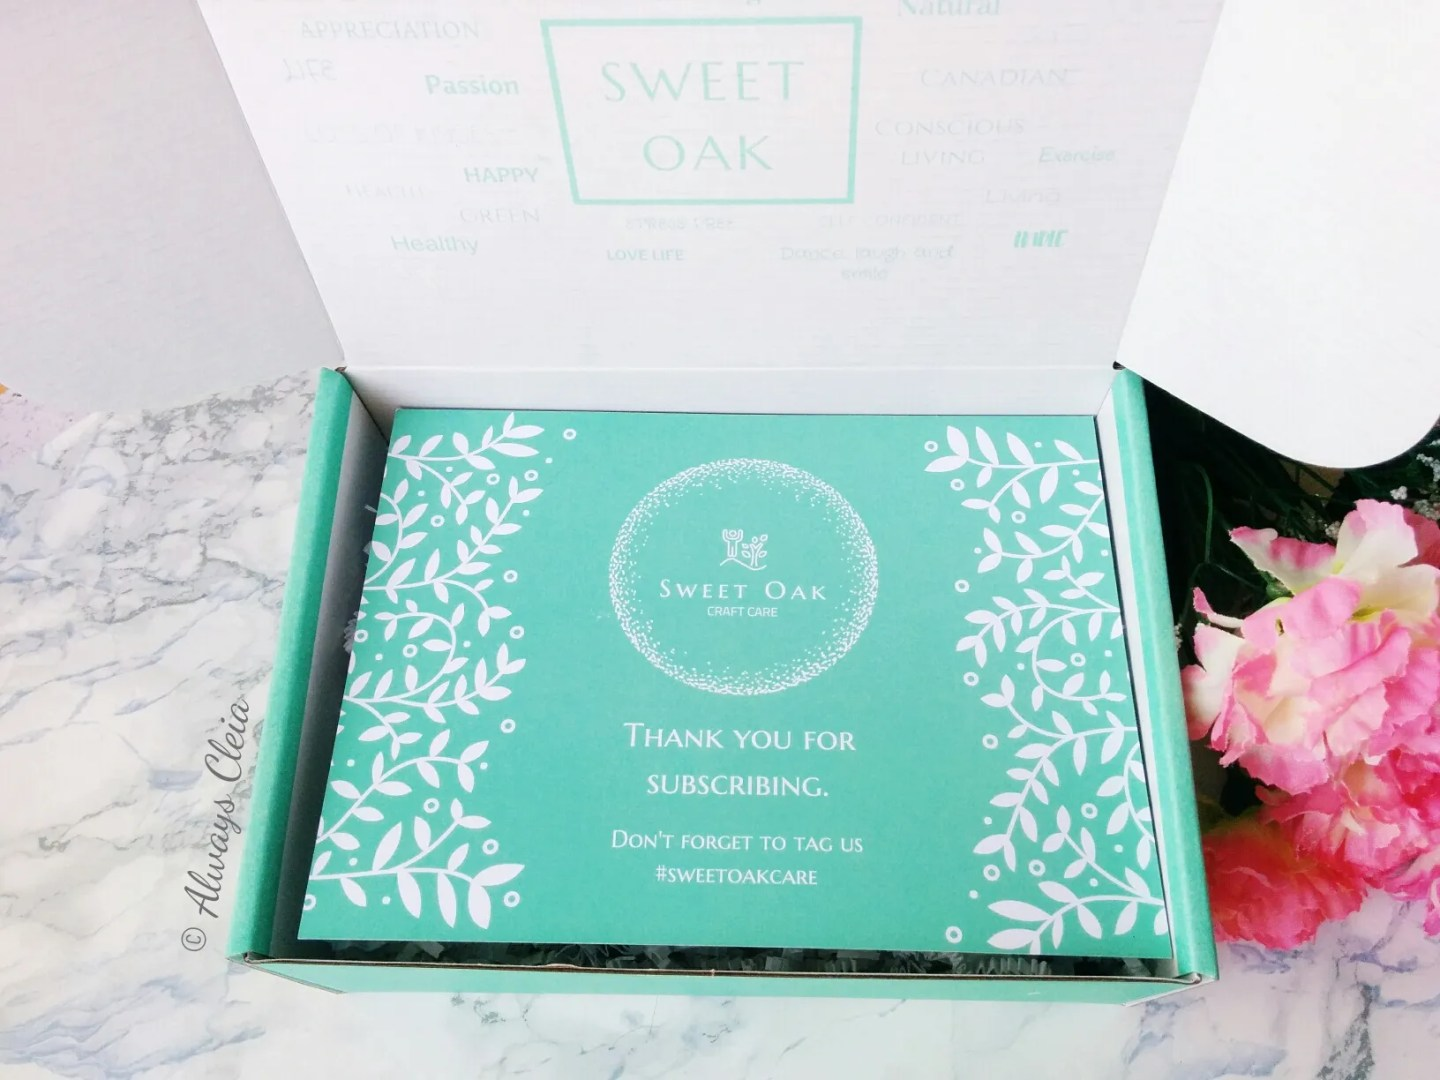 Sweet Oak Craft Care Canadian Subscription Box